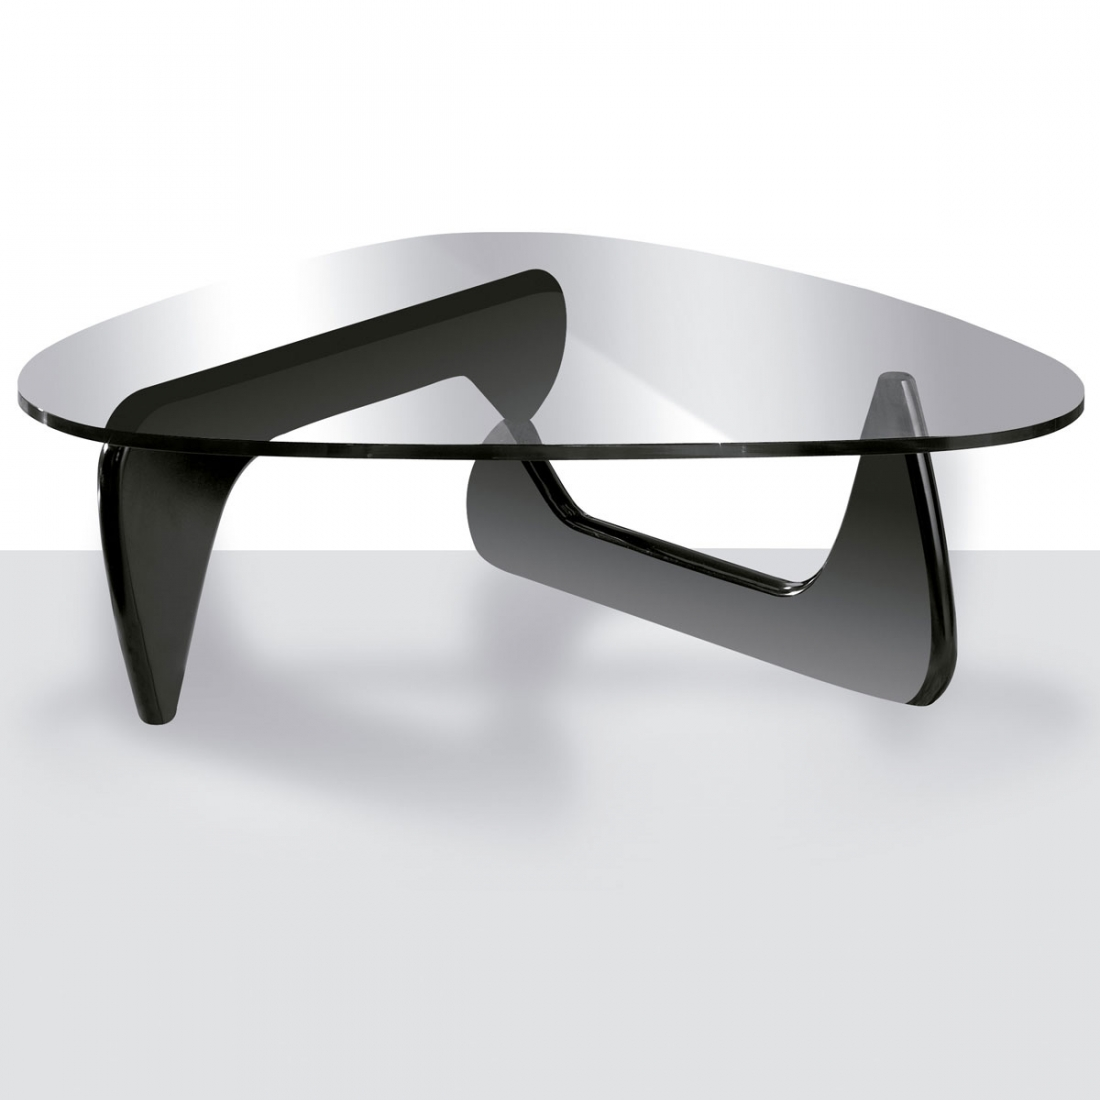 Table basse design Isamu